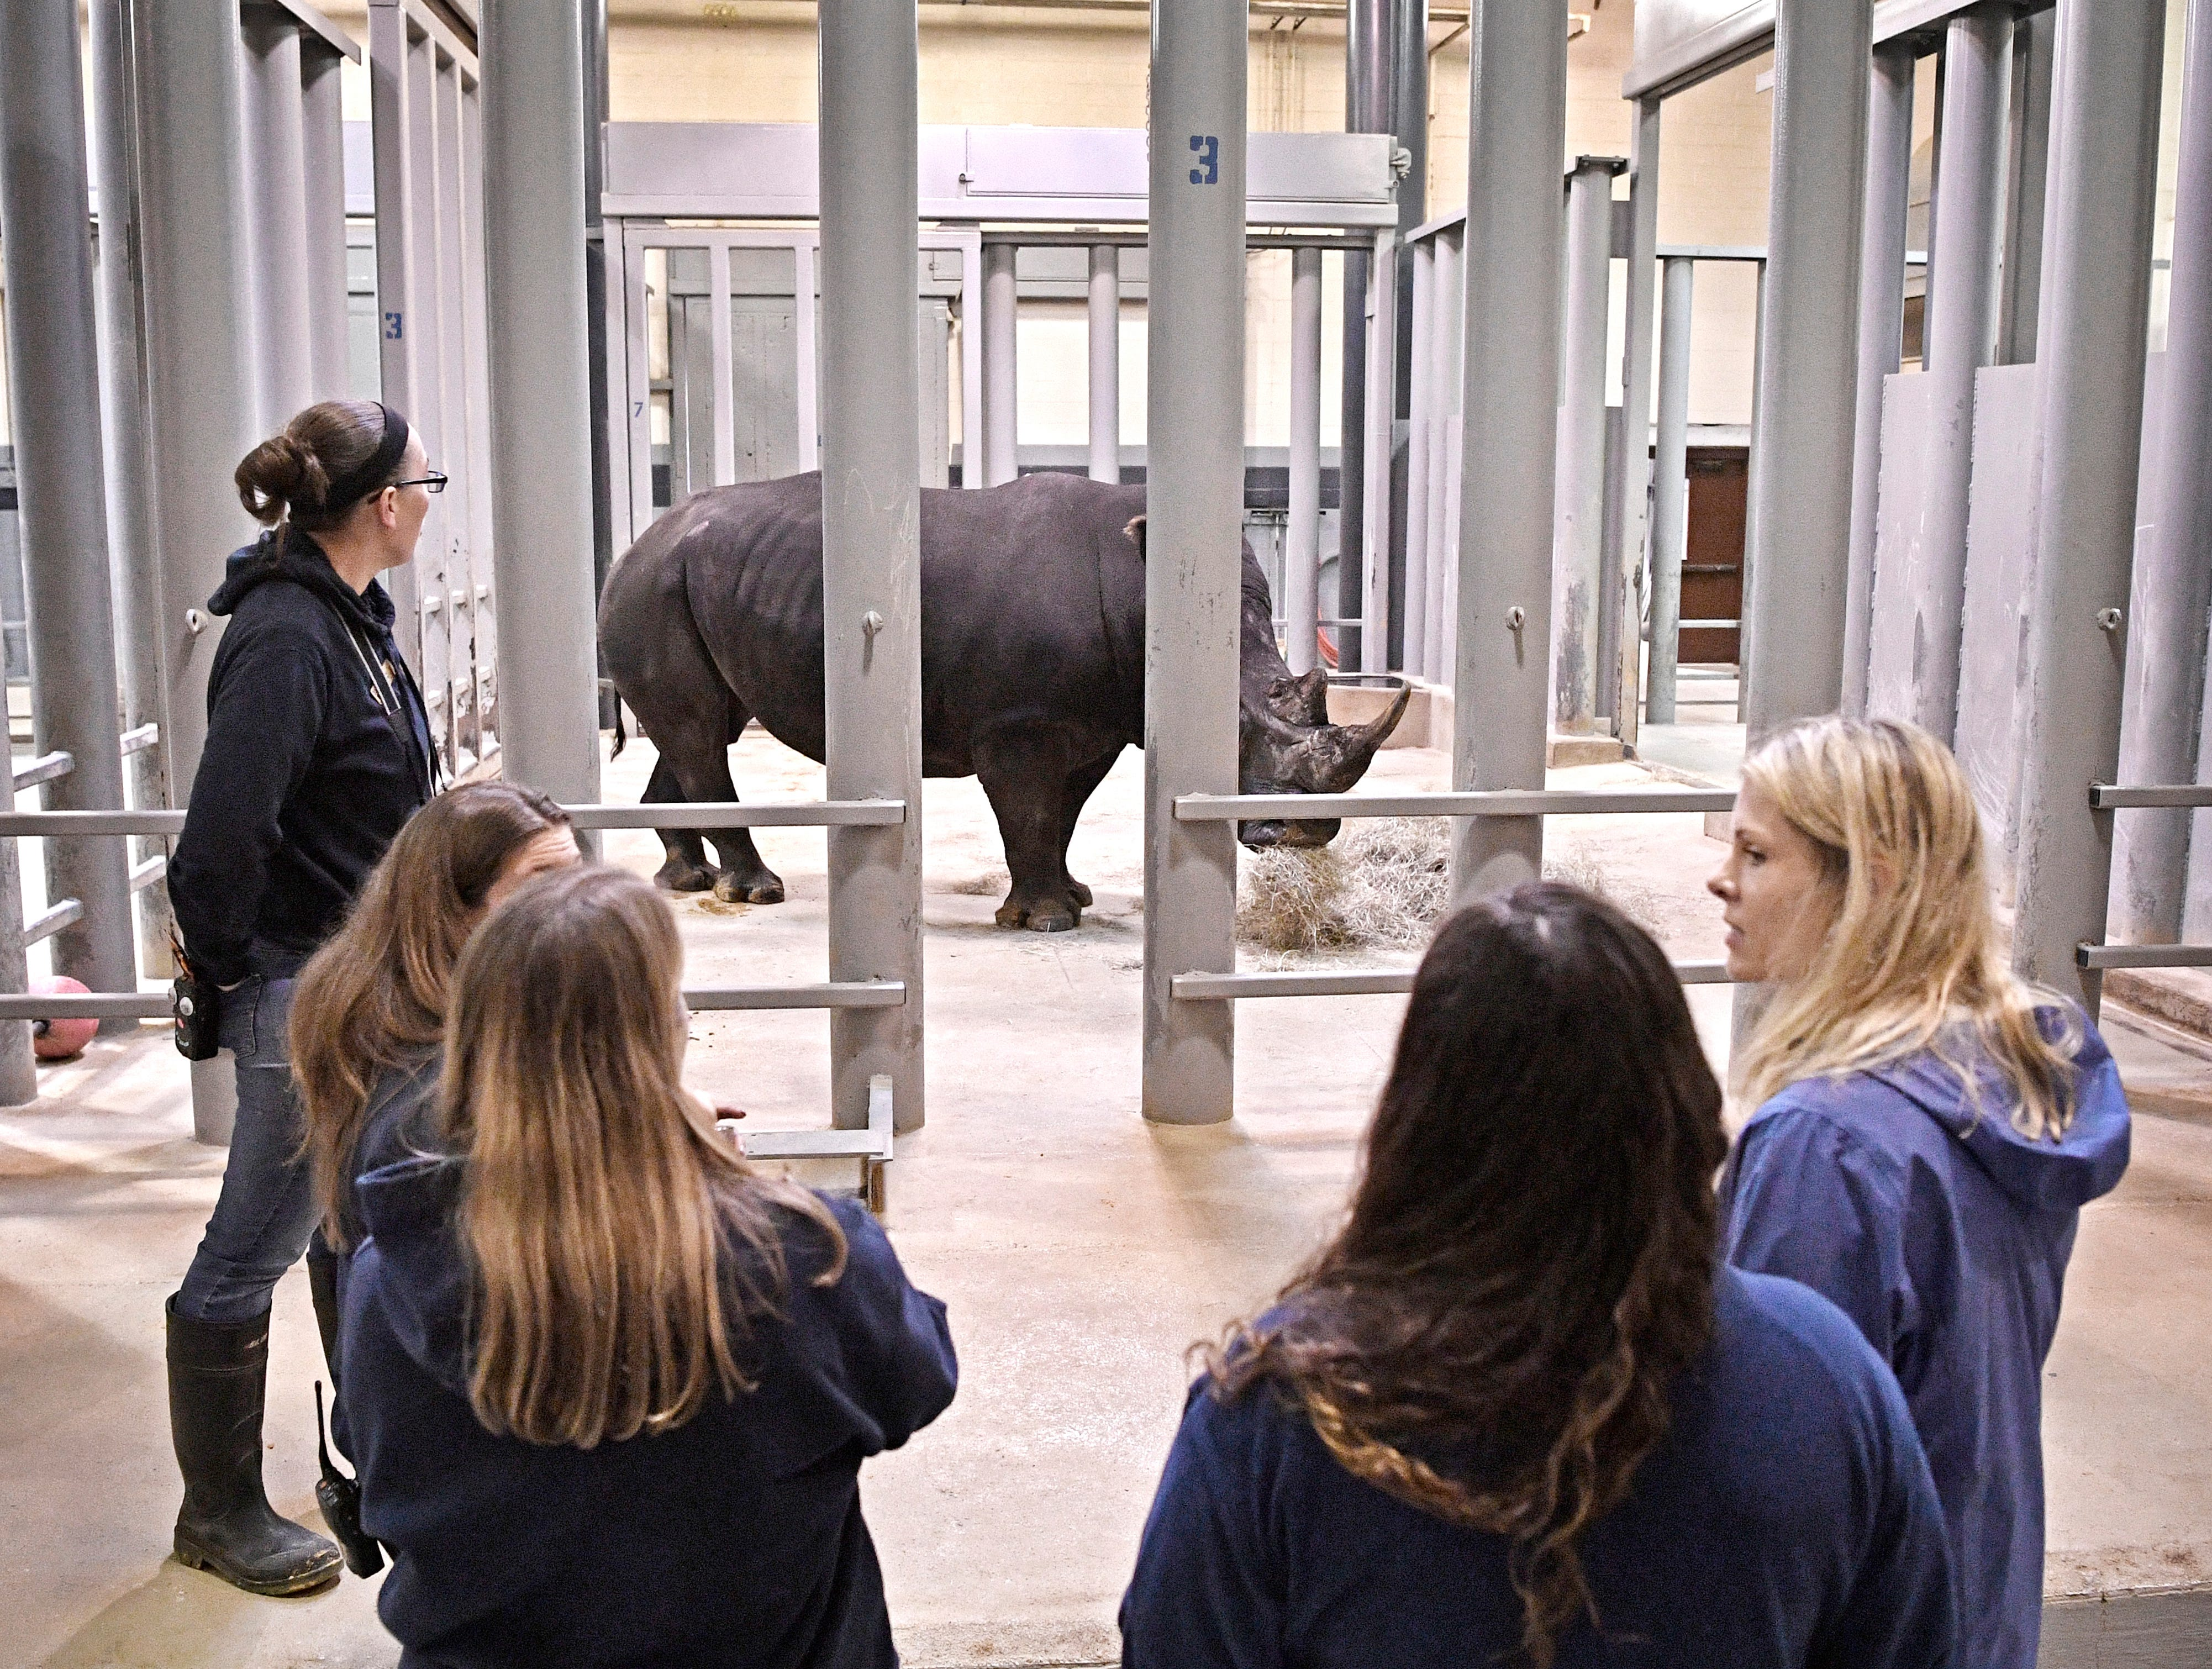 Workers observe the new male White Rhino that will be a mate for the four female rhinos at the Nashville Zoo  Saturday Dec. 1, 2018, in Nashville, Tenn.